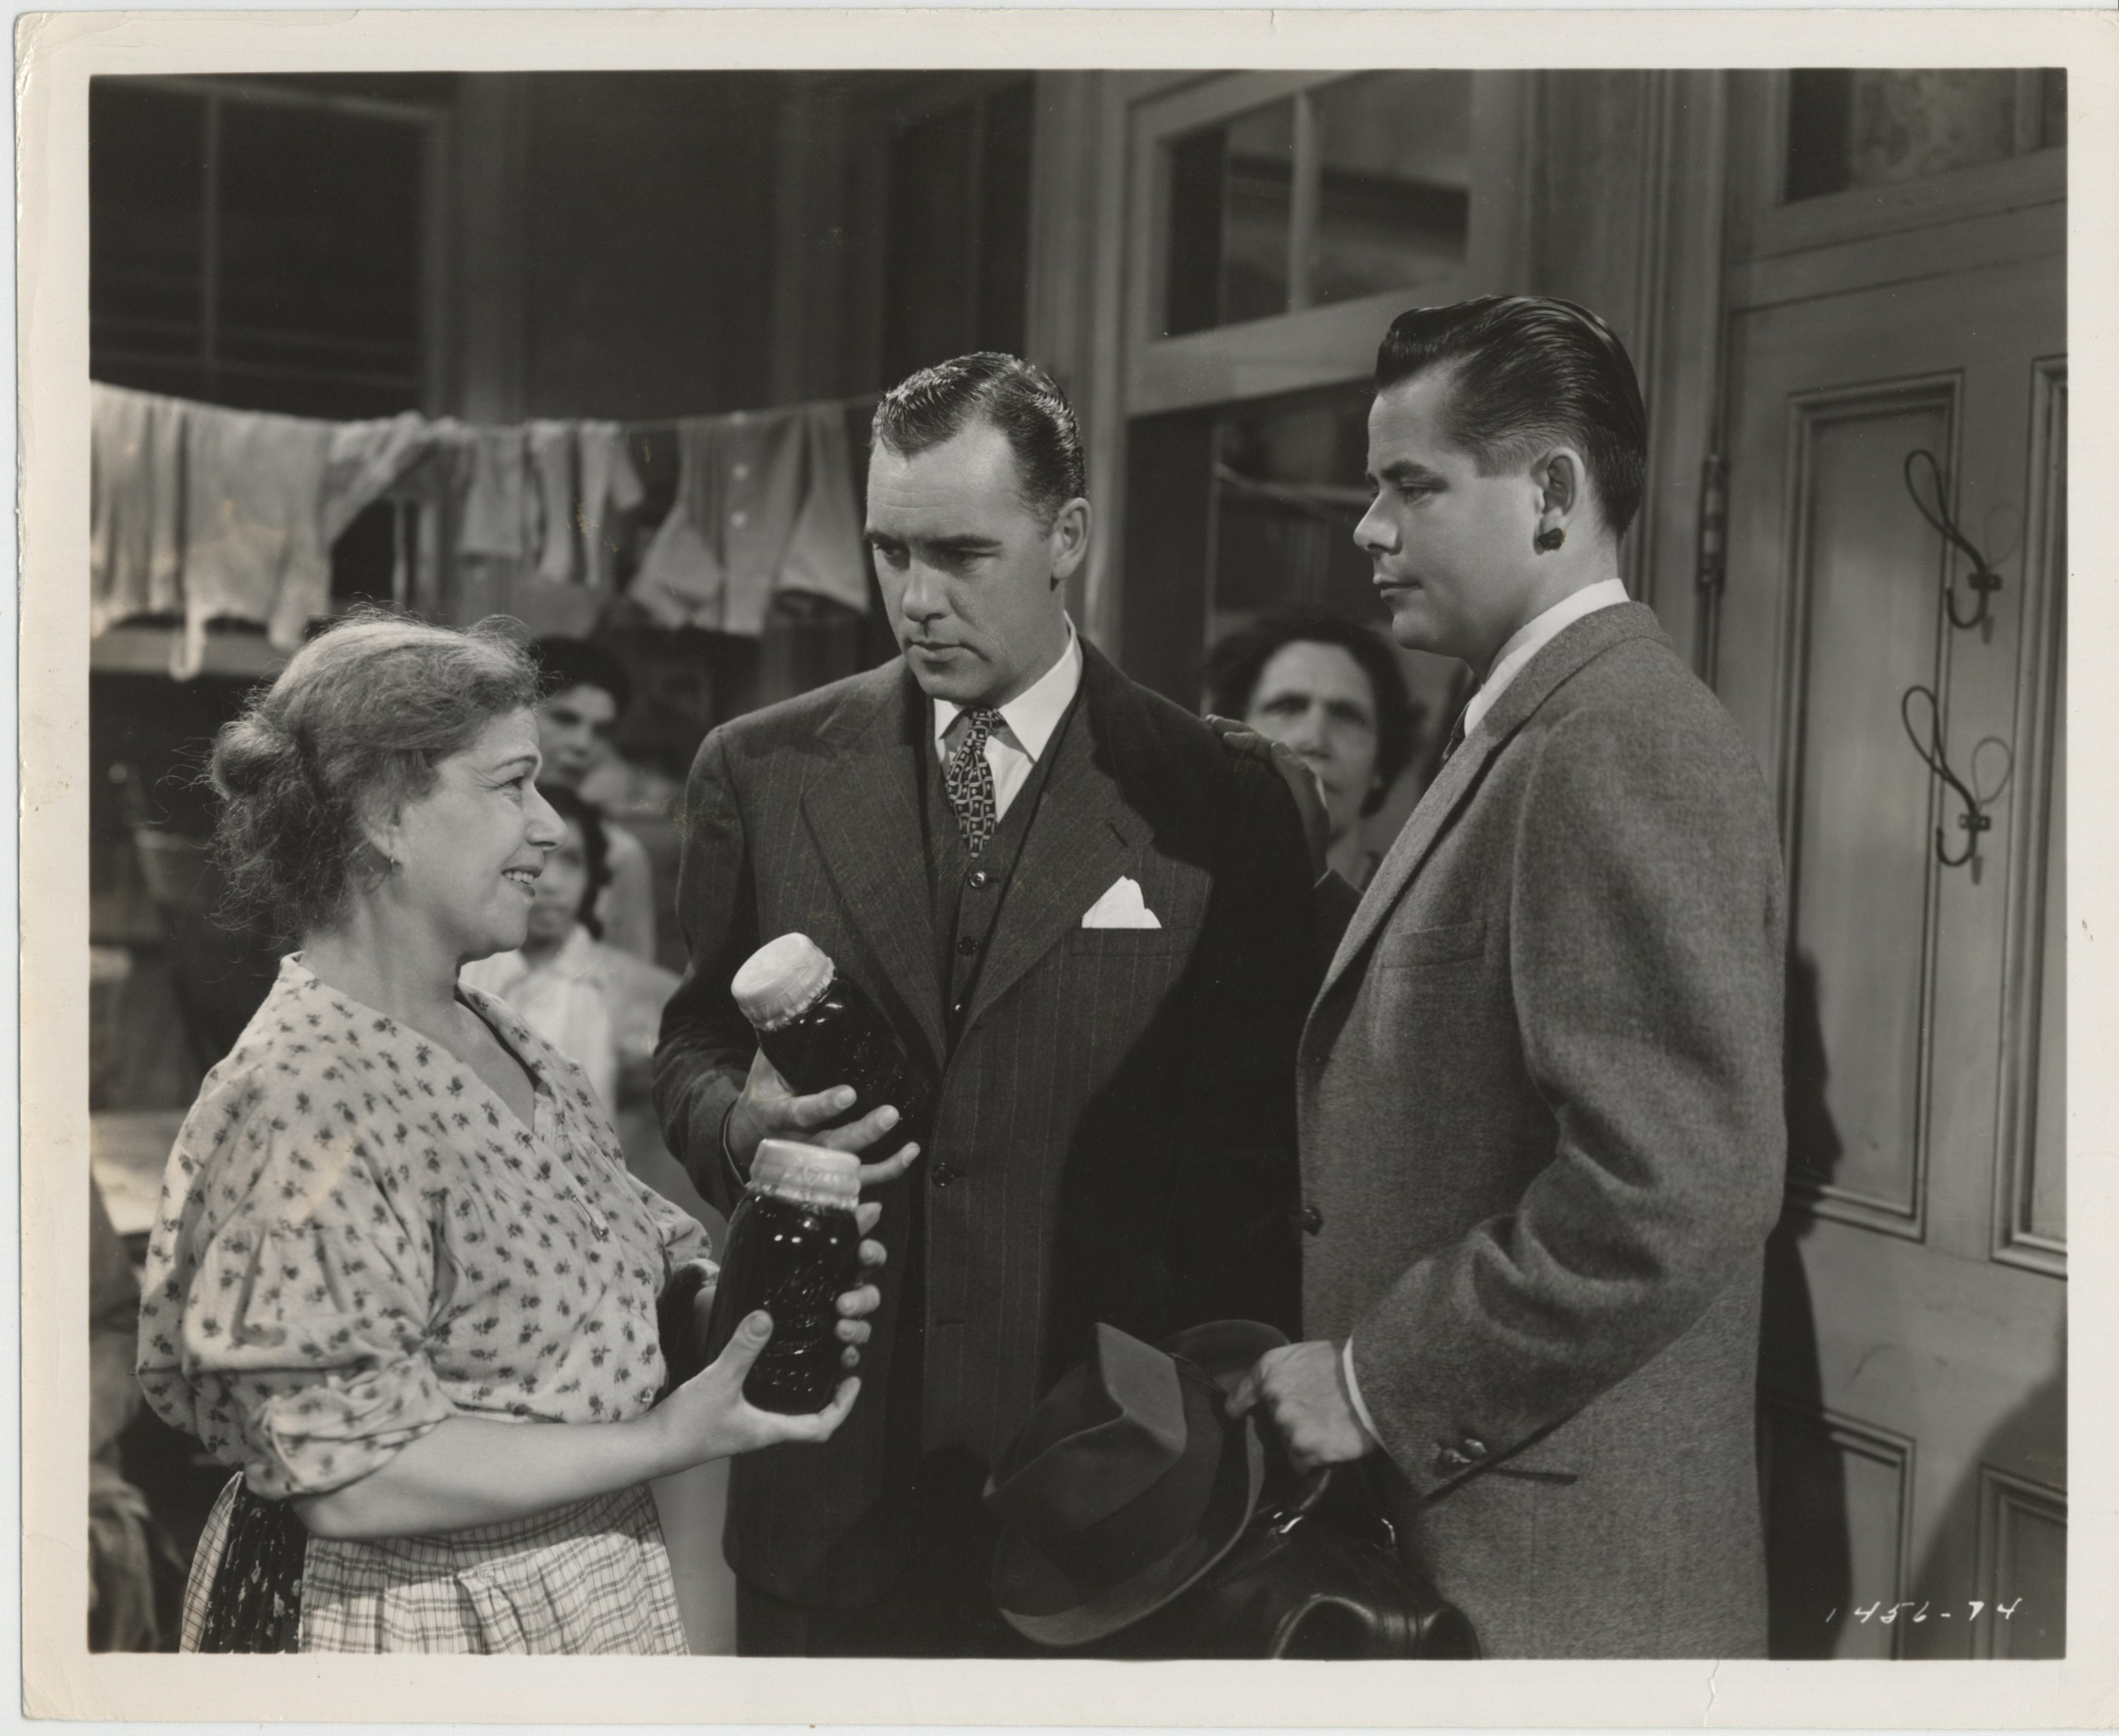 Glenn Ford, Mimi Aguglia, and Warner Anderson in The Doctor and the Girl (1949)